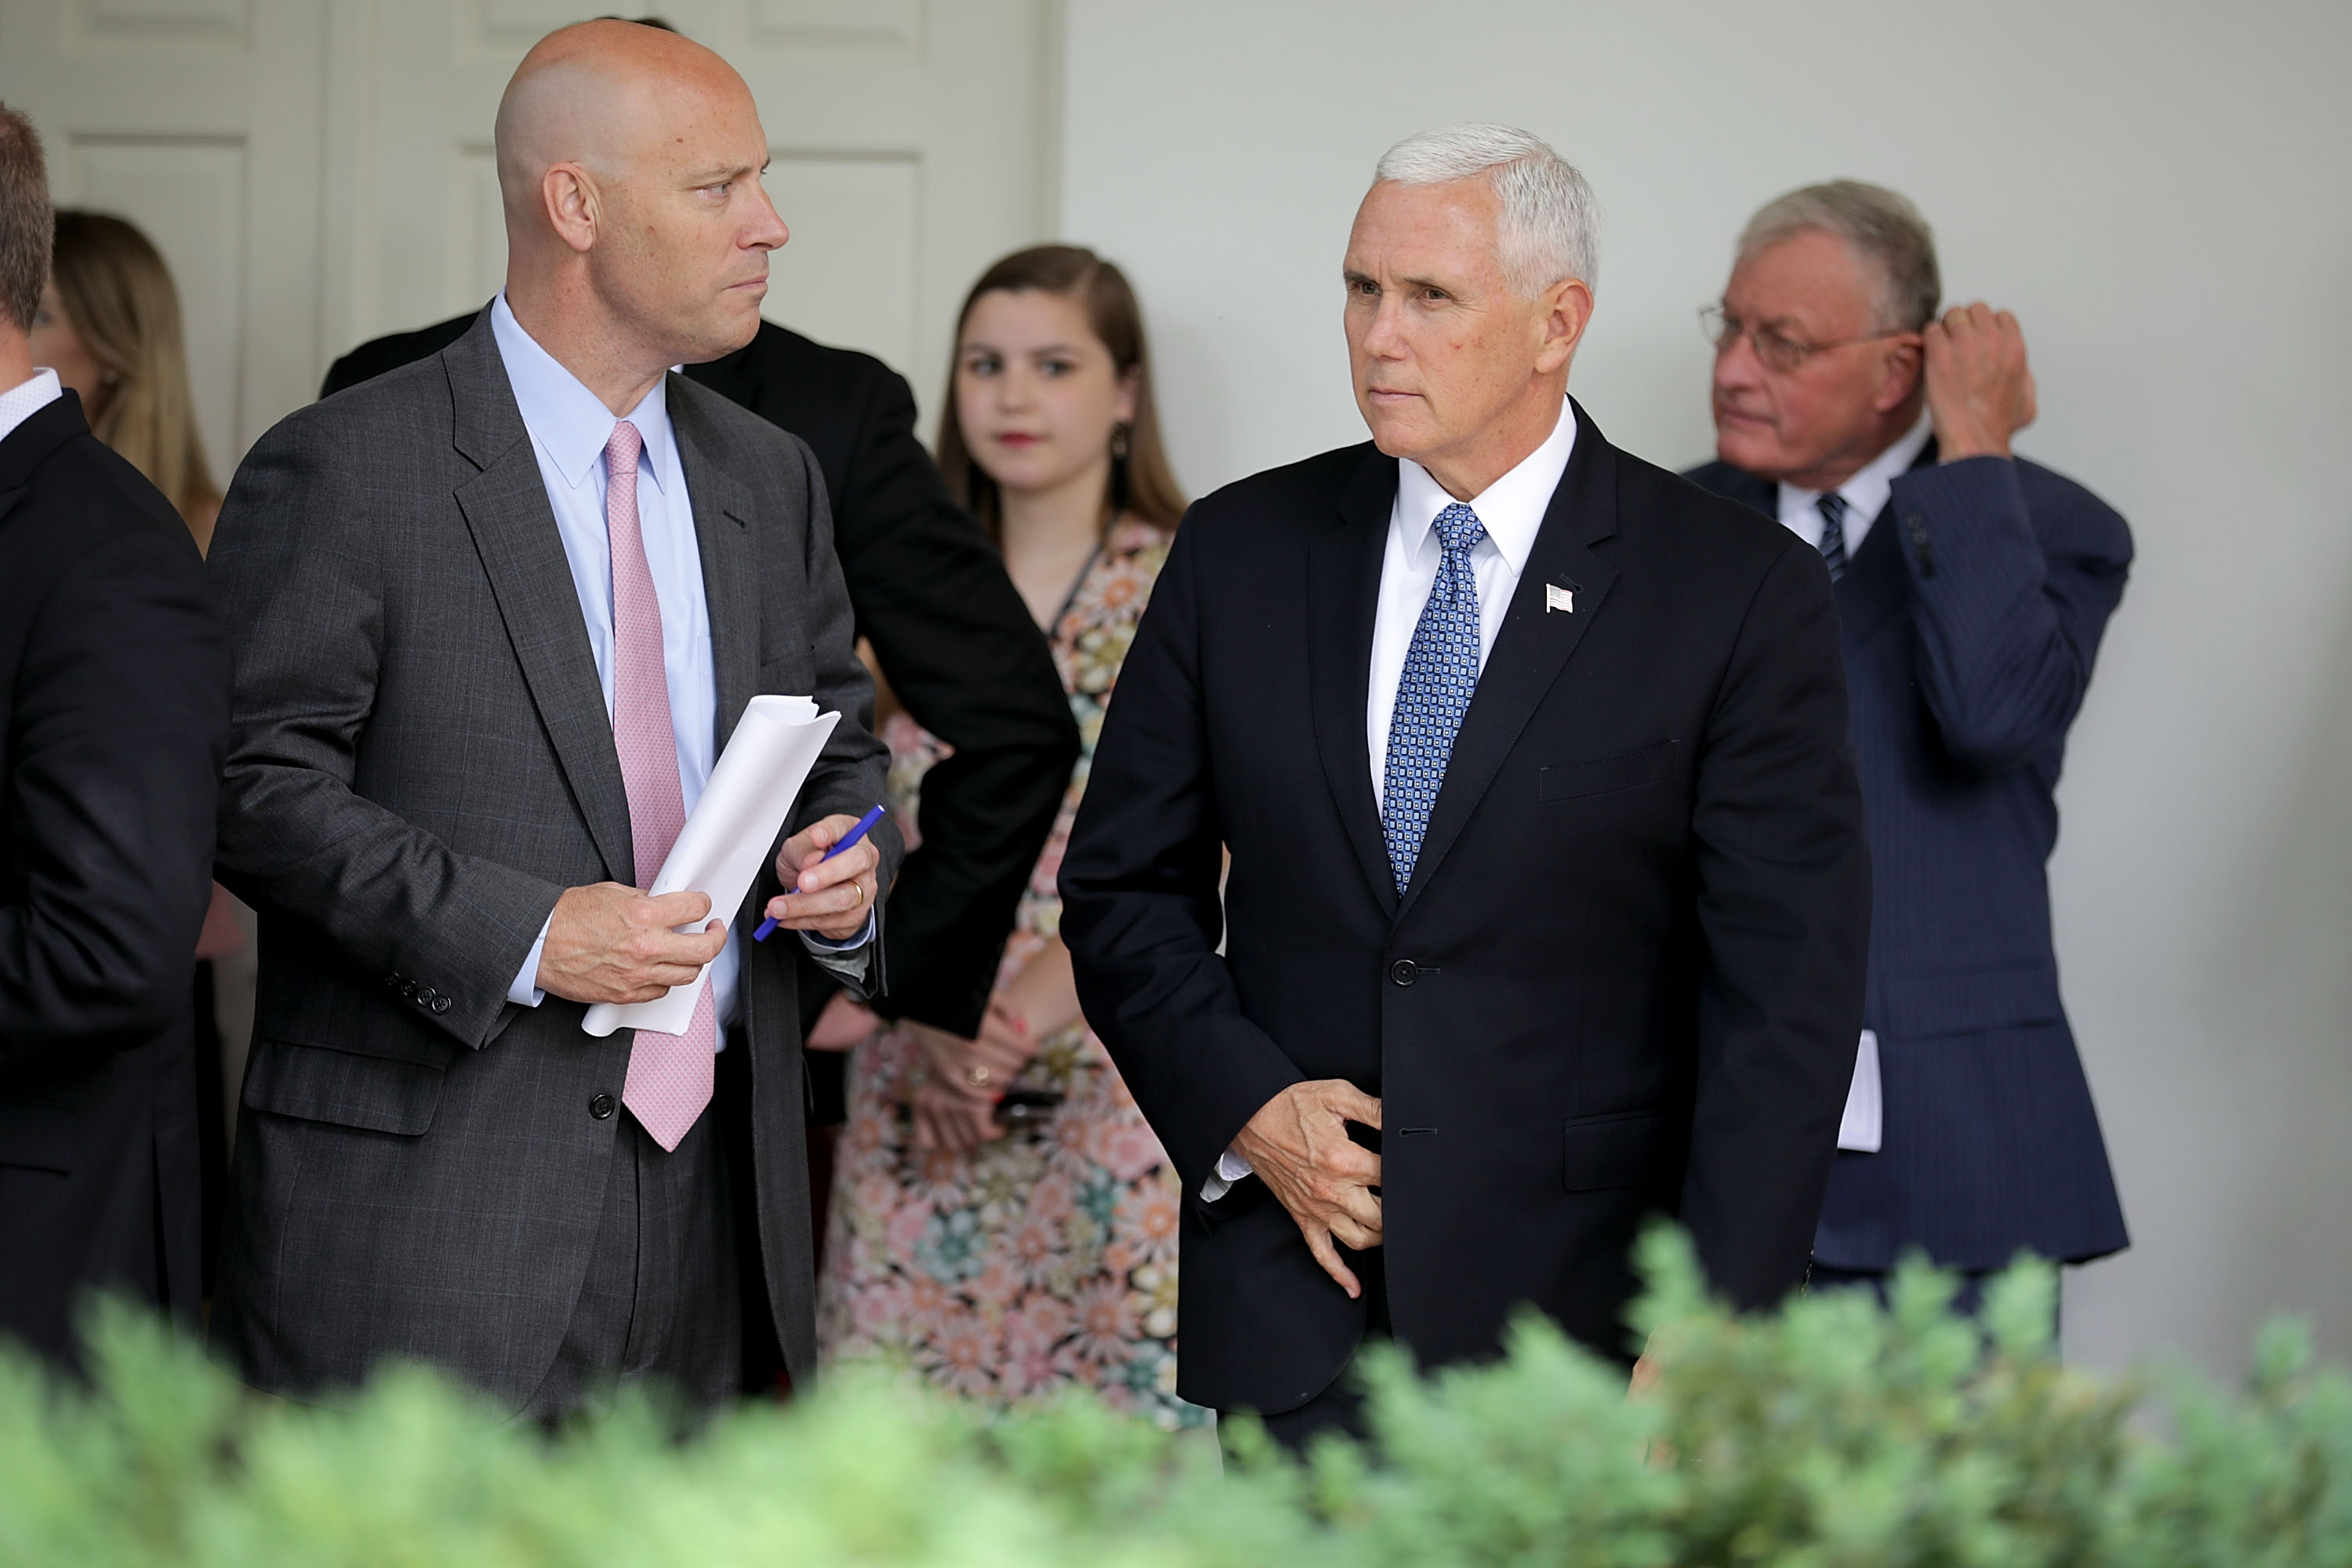 Marc Short and Vice President Mike Pence arrive for a signing ceremony for the Veterans Affairs Mission Act in the Rose Garden at the White House on June 6, 2018 in Washington, DC.